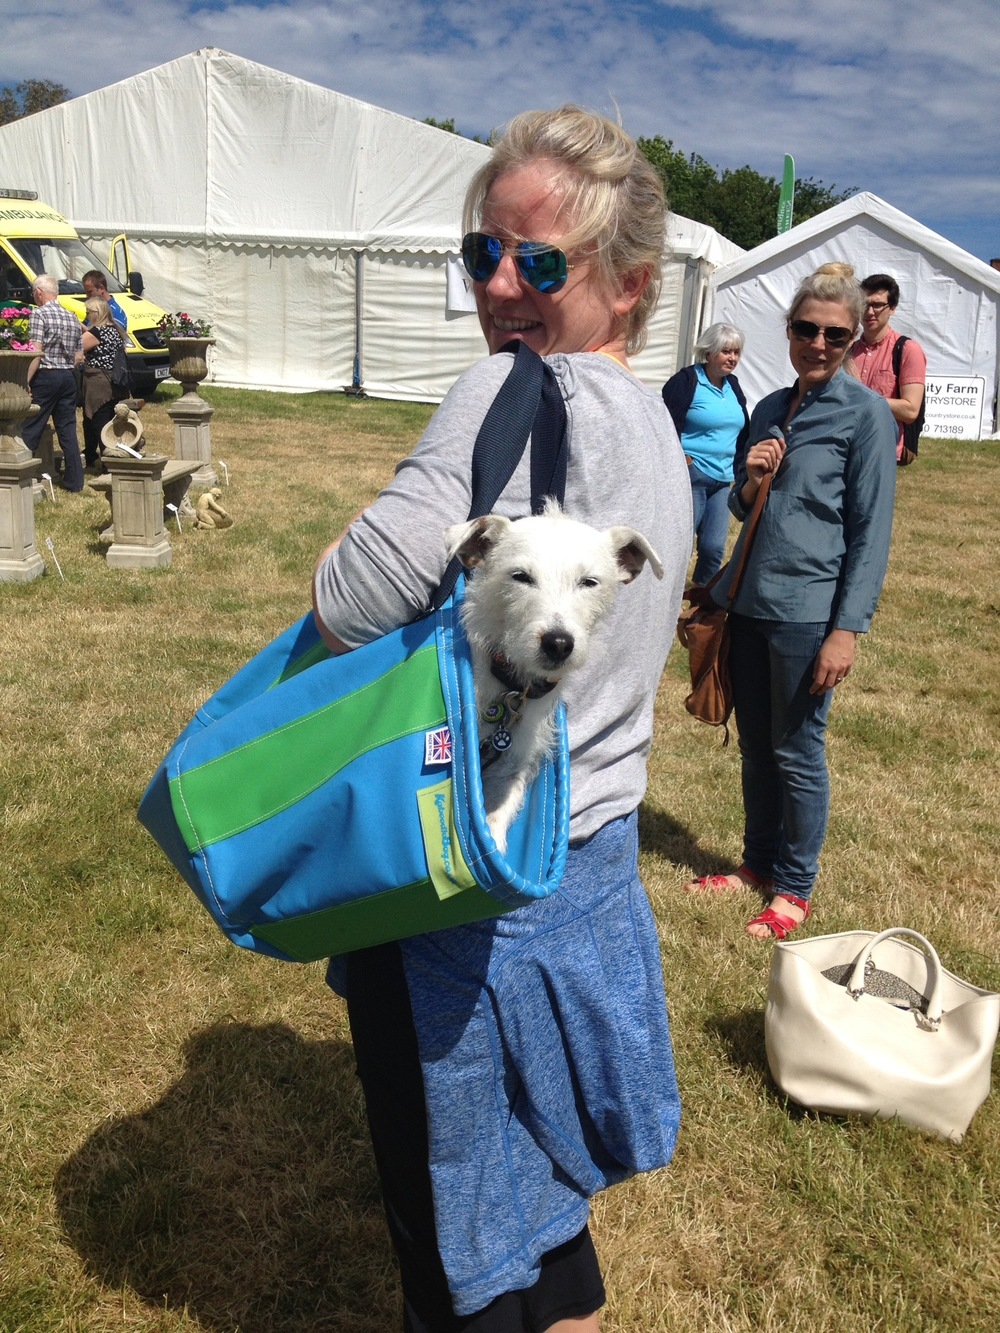 A tired visitor at the Wealdon Times fair